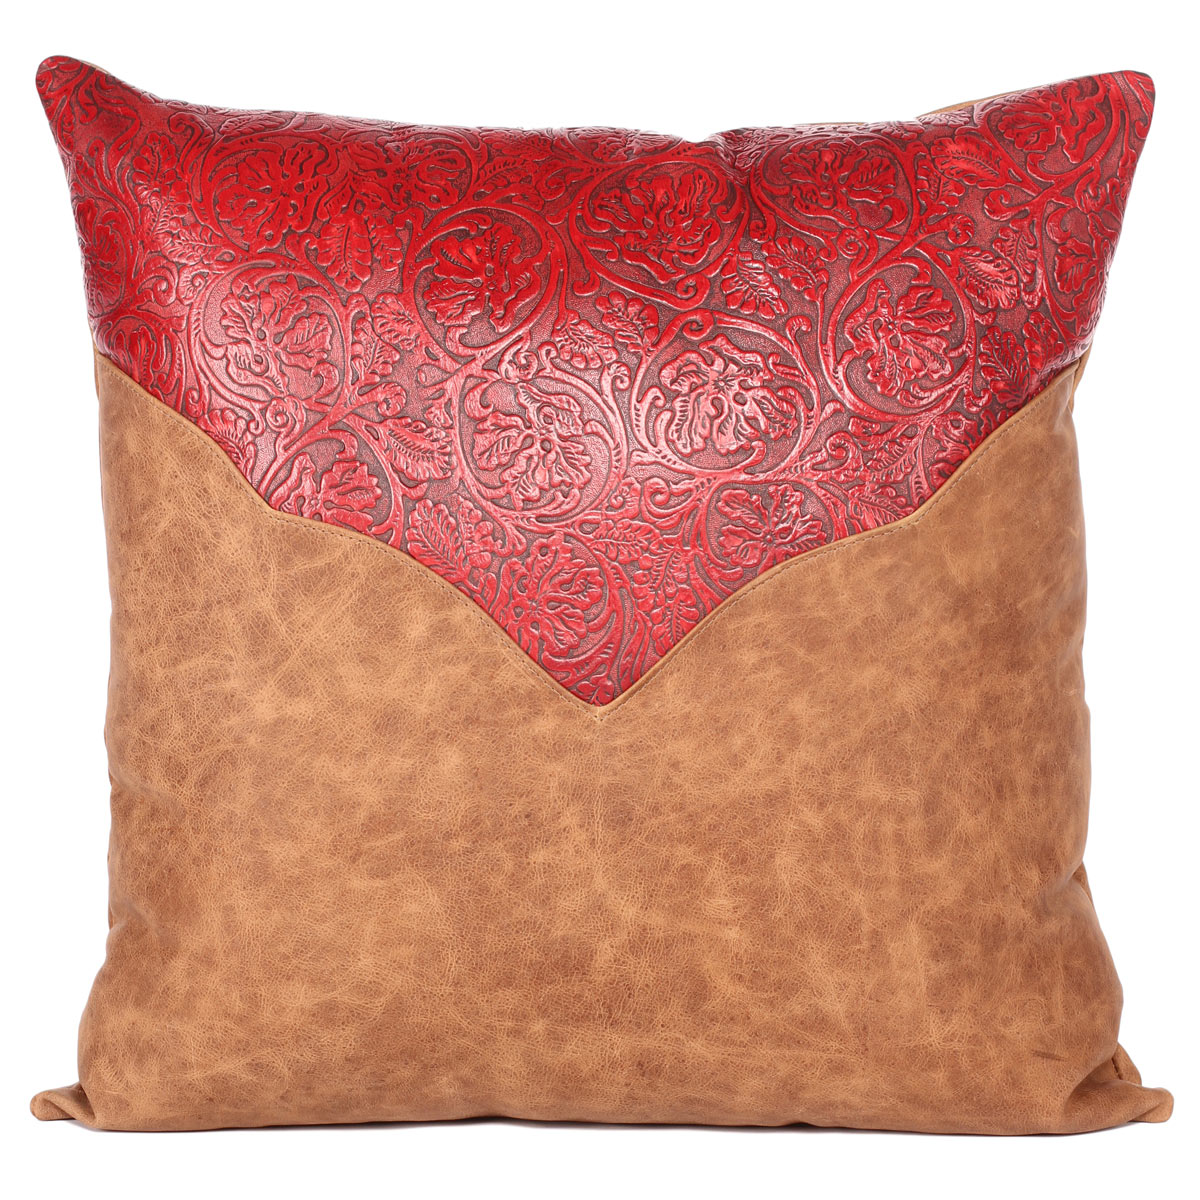 Riata Rose Accent Pillow - 24 x 24